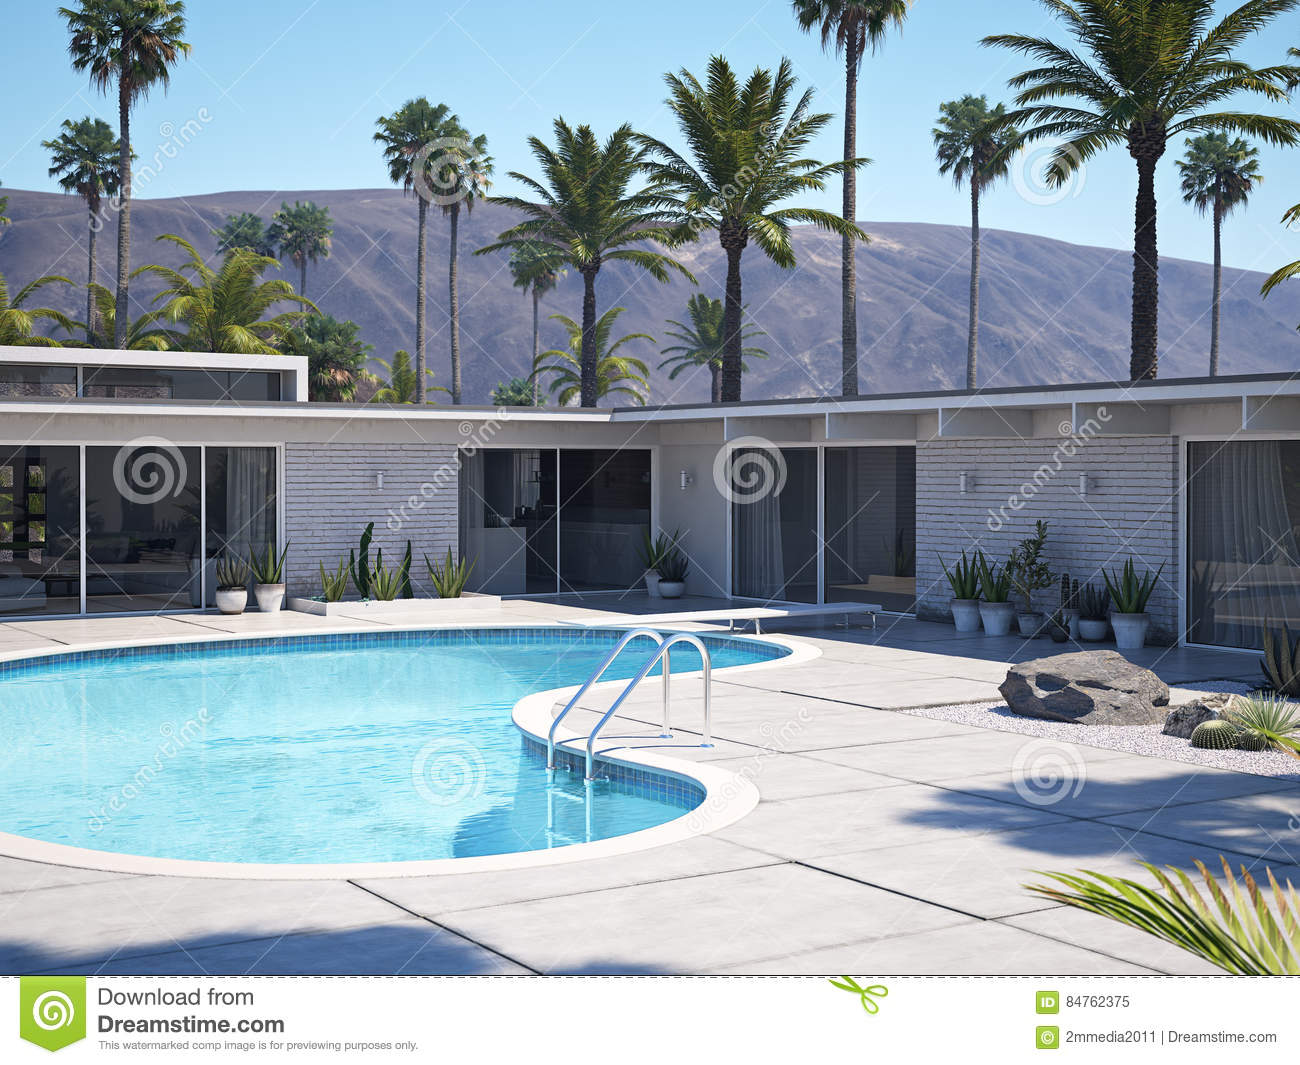 Vue de piscine et d 39 ext rieur moderne de maison rendu 3d illustration stock illustration du for Exterieur maison 3d